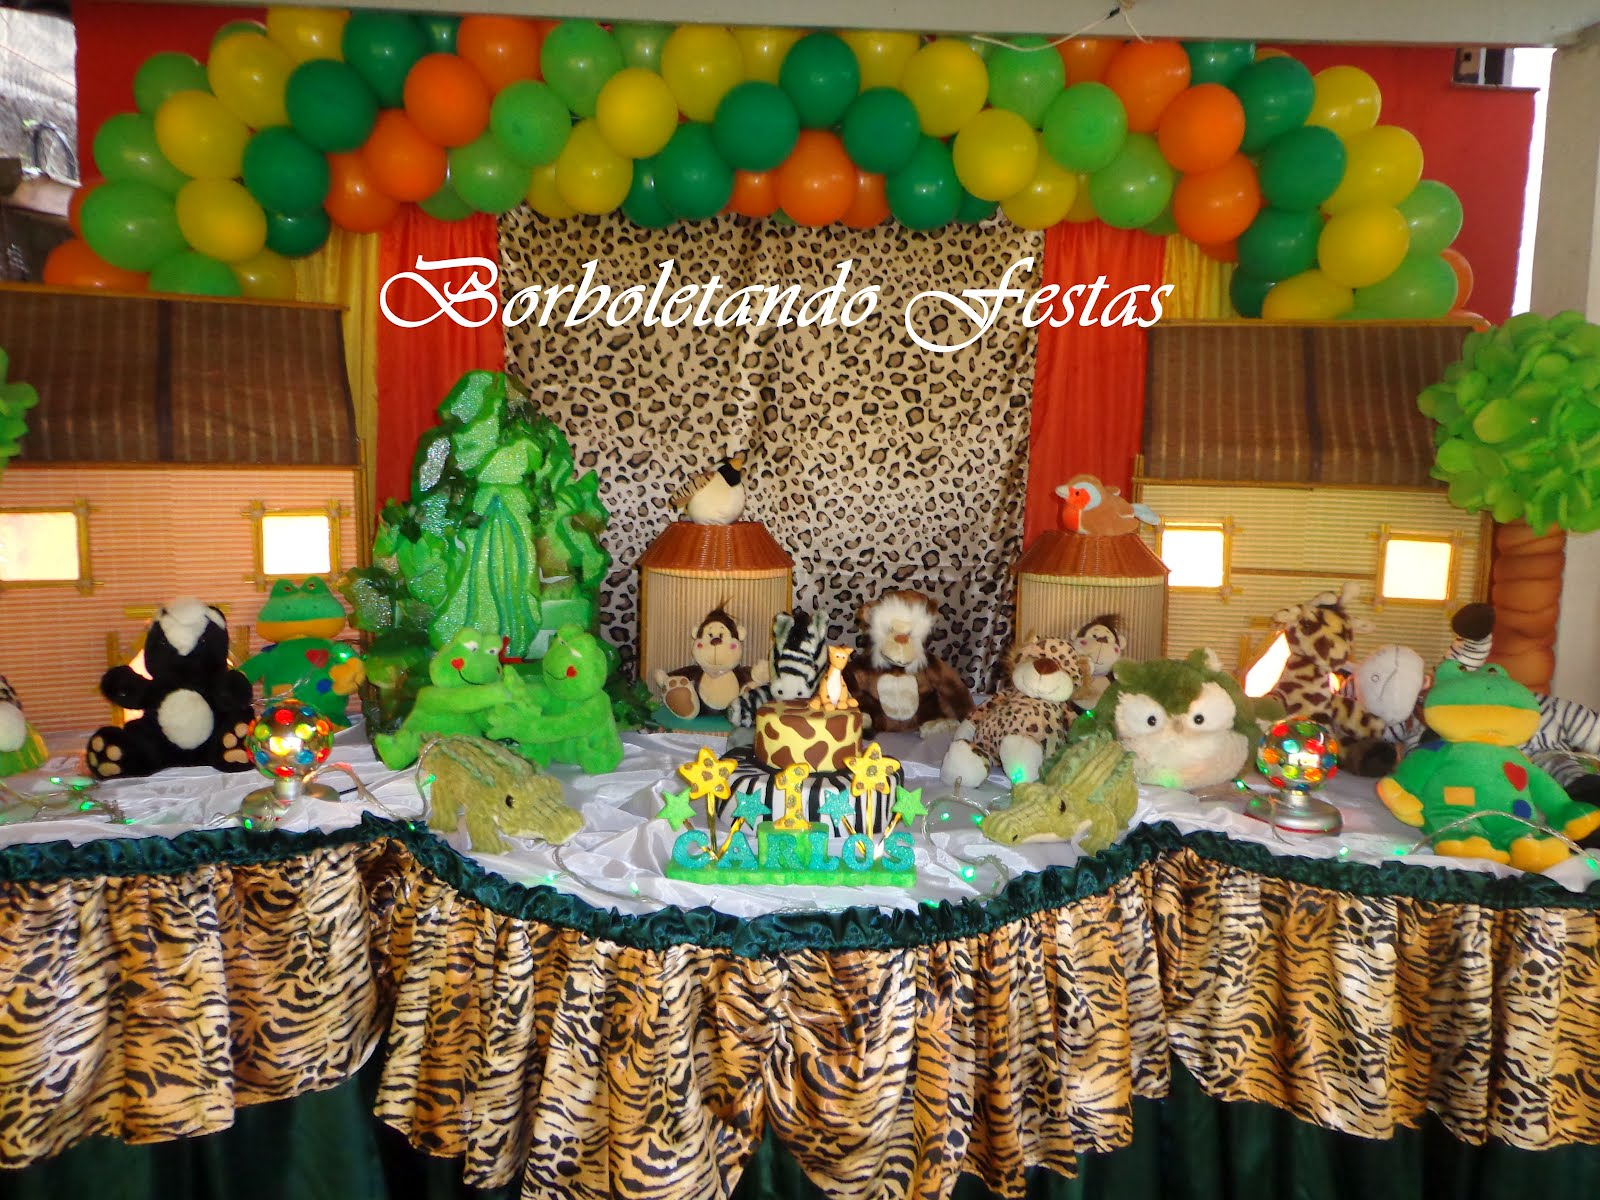 decoracao festa safari:Decoracao Festa Safari Infantil